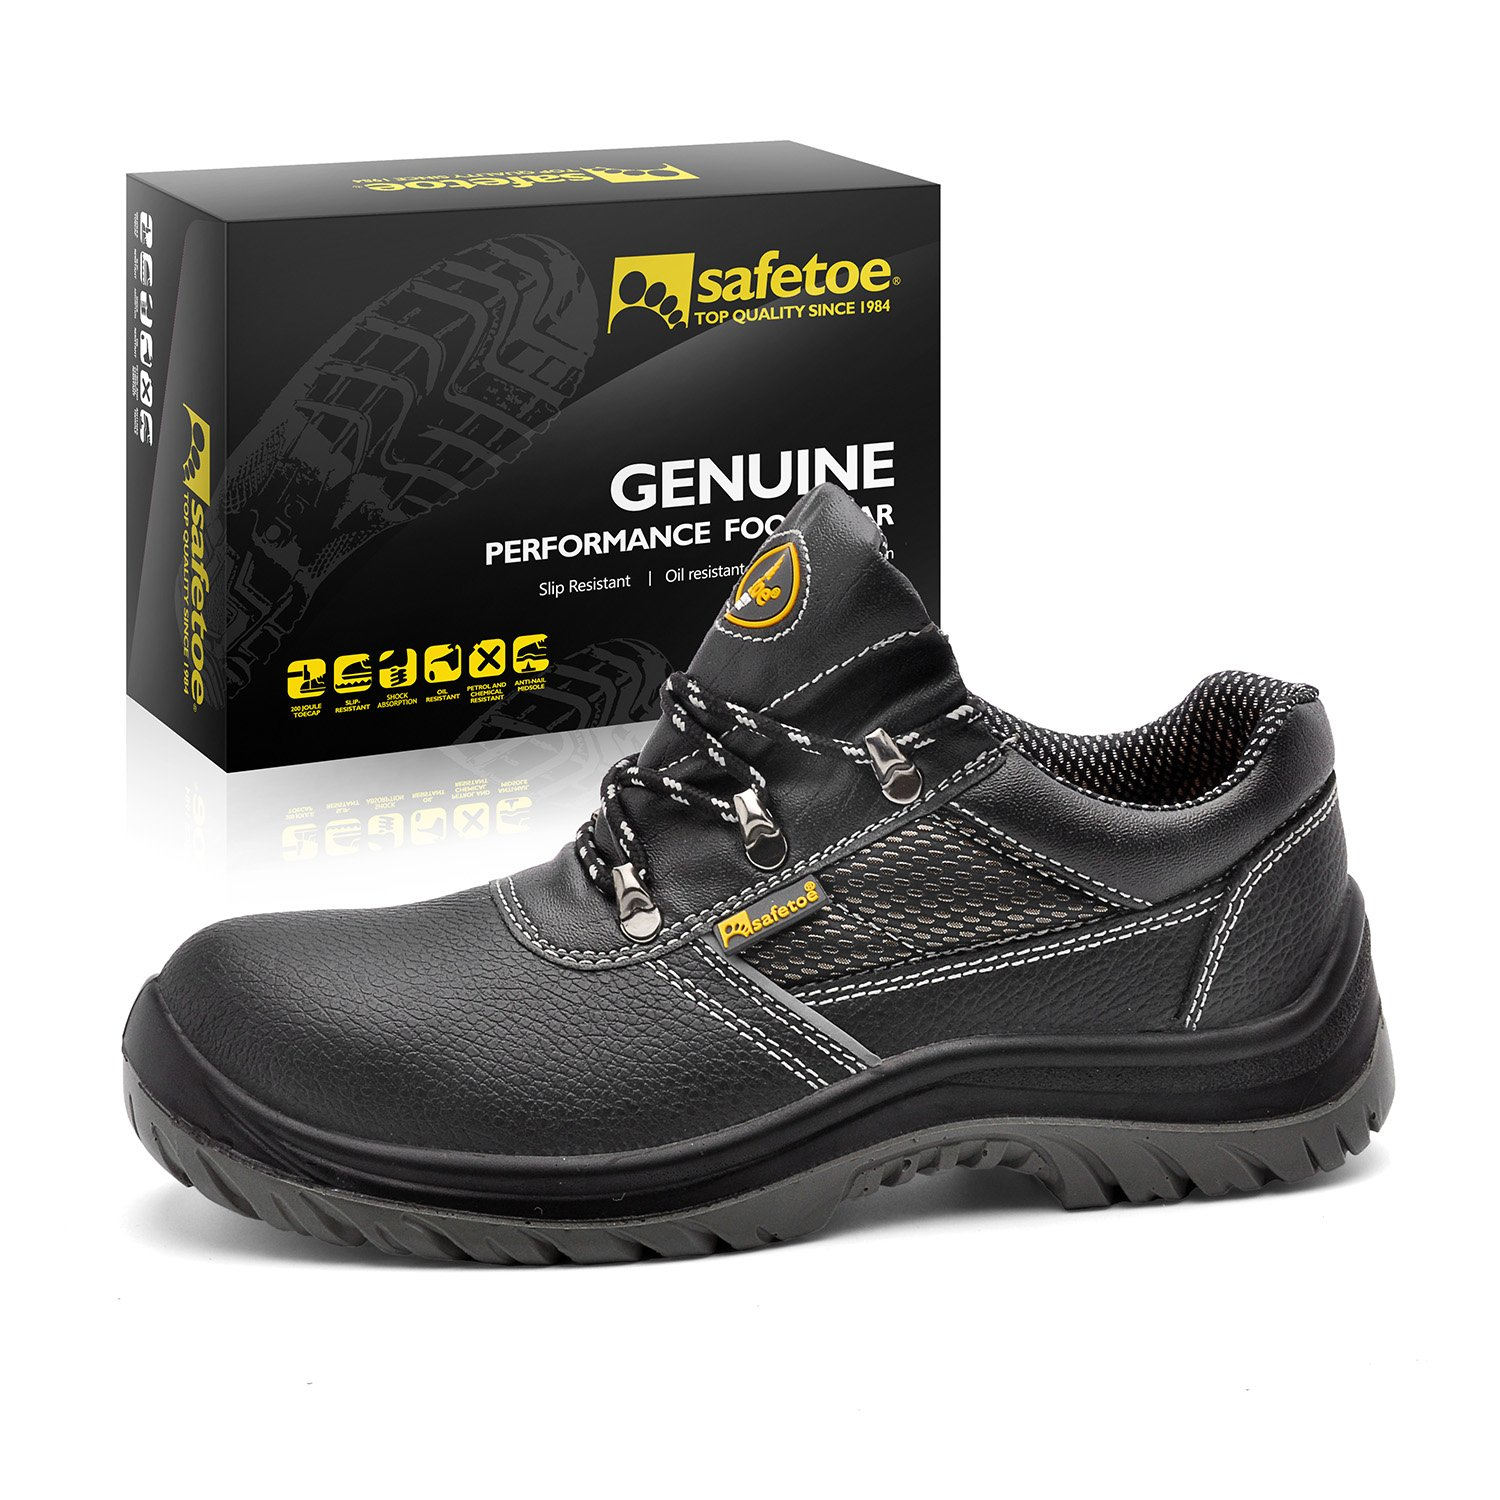 8a8ca0b4e31 SAFETOE Men Steel Toe Cap Safety Shoes - L7222 Water Resistant Lightweight  Leather Work Boots